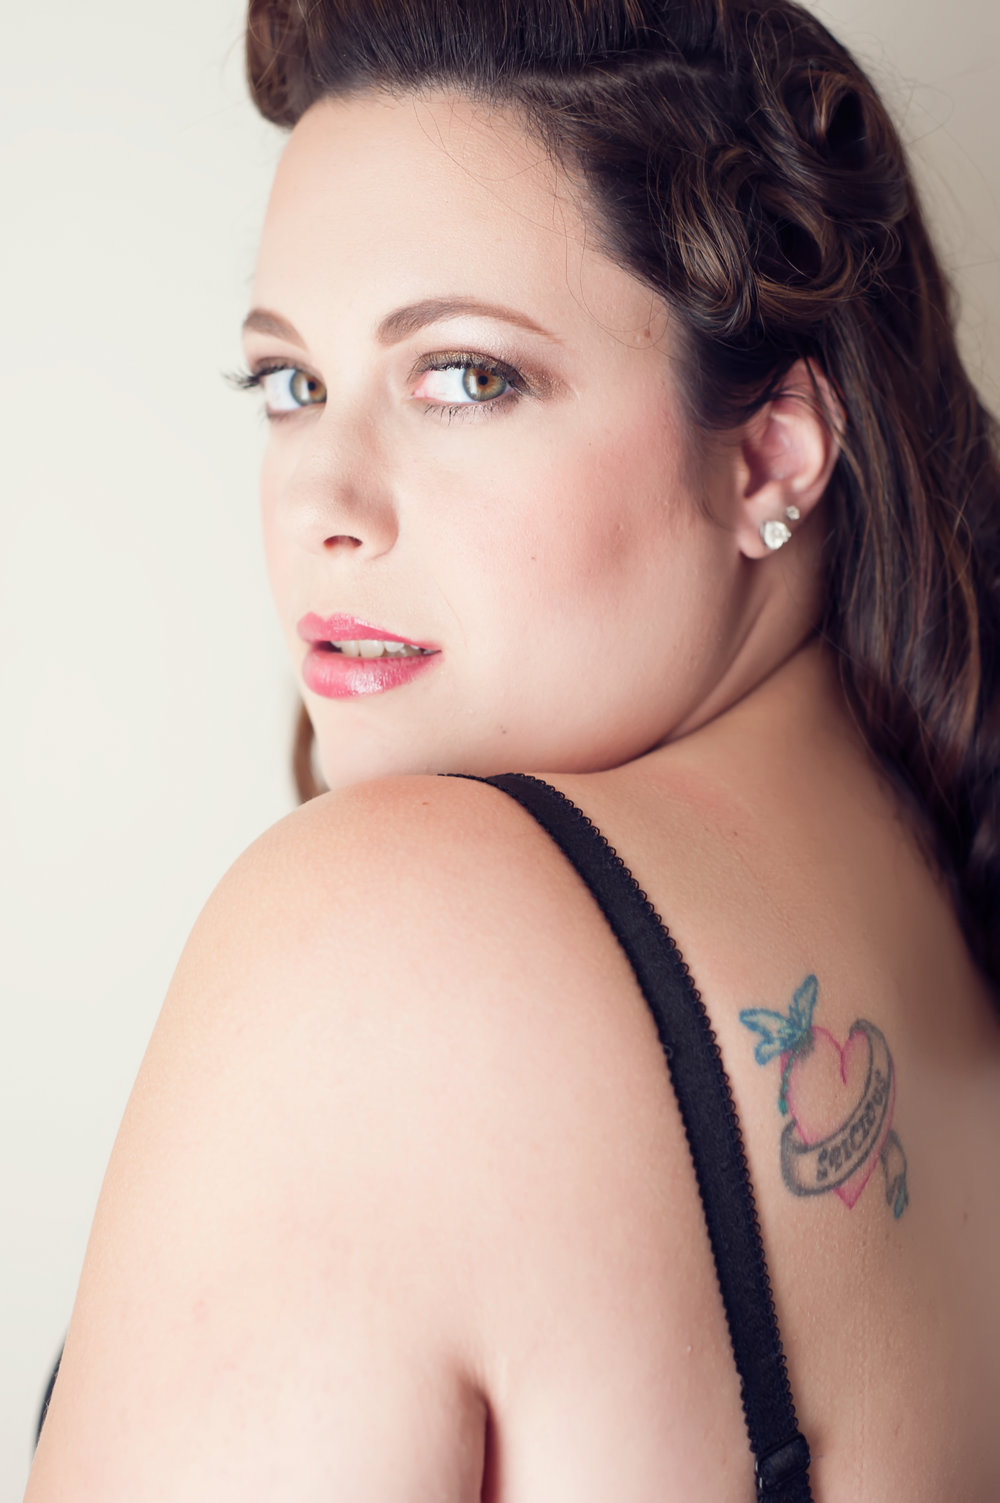 Vintage inspired Denver boudoir photo shoot of tattooed brunette